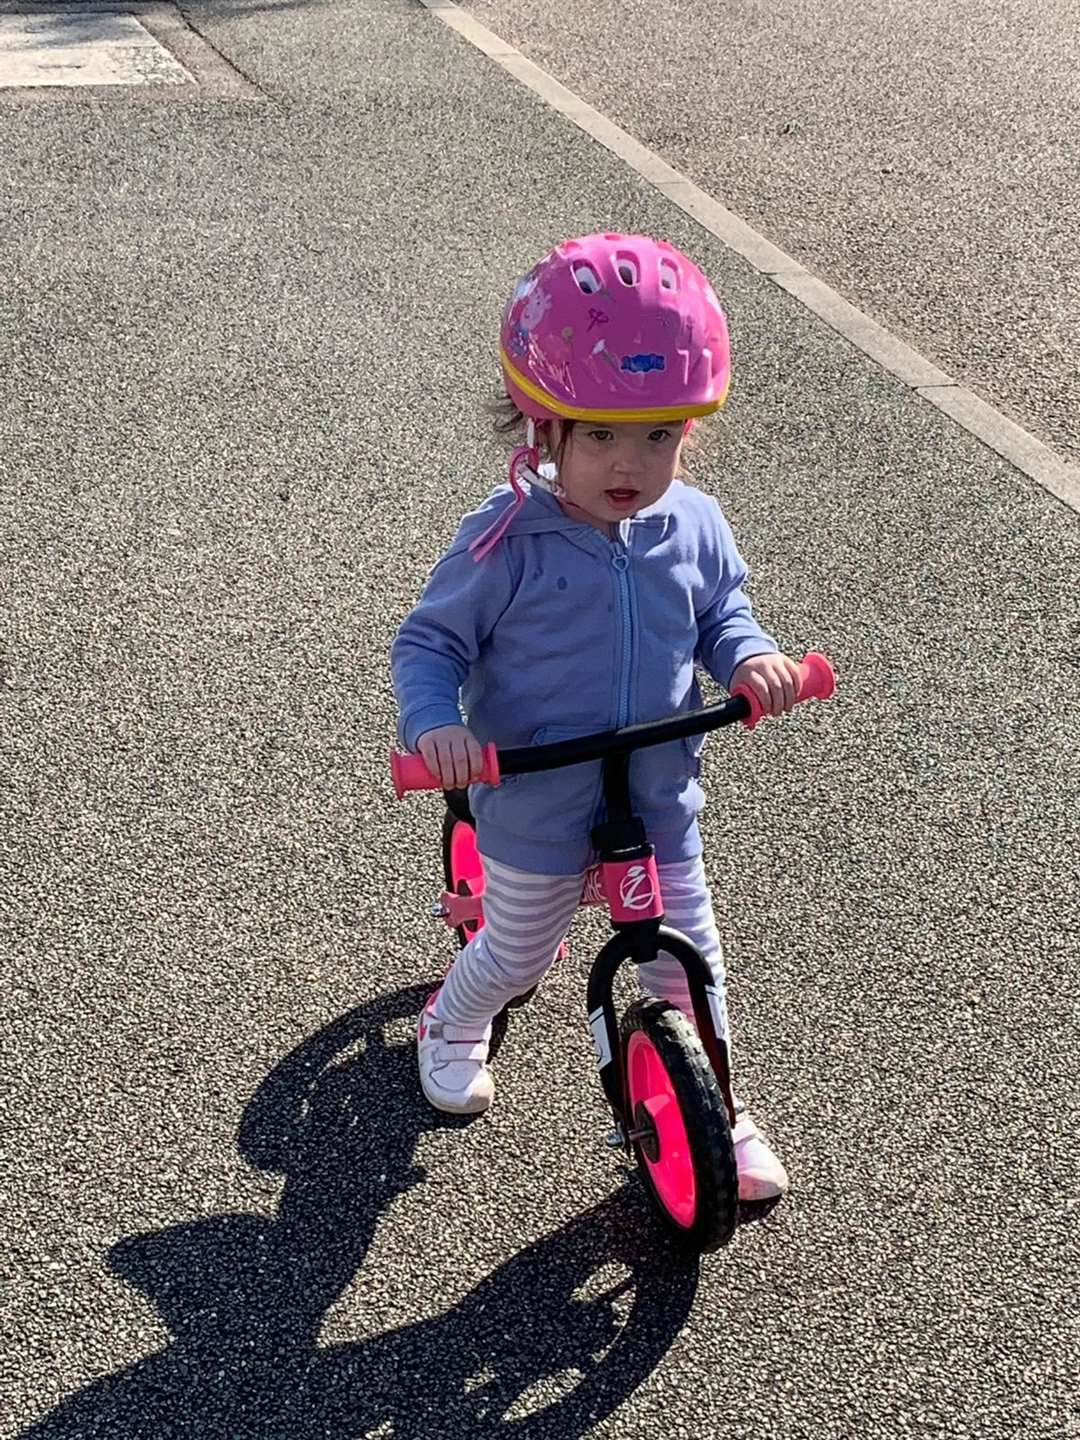 Molly Marsh, 2, on her bike ride for the NHS (34283940)